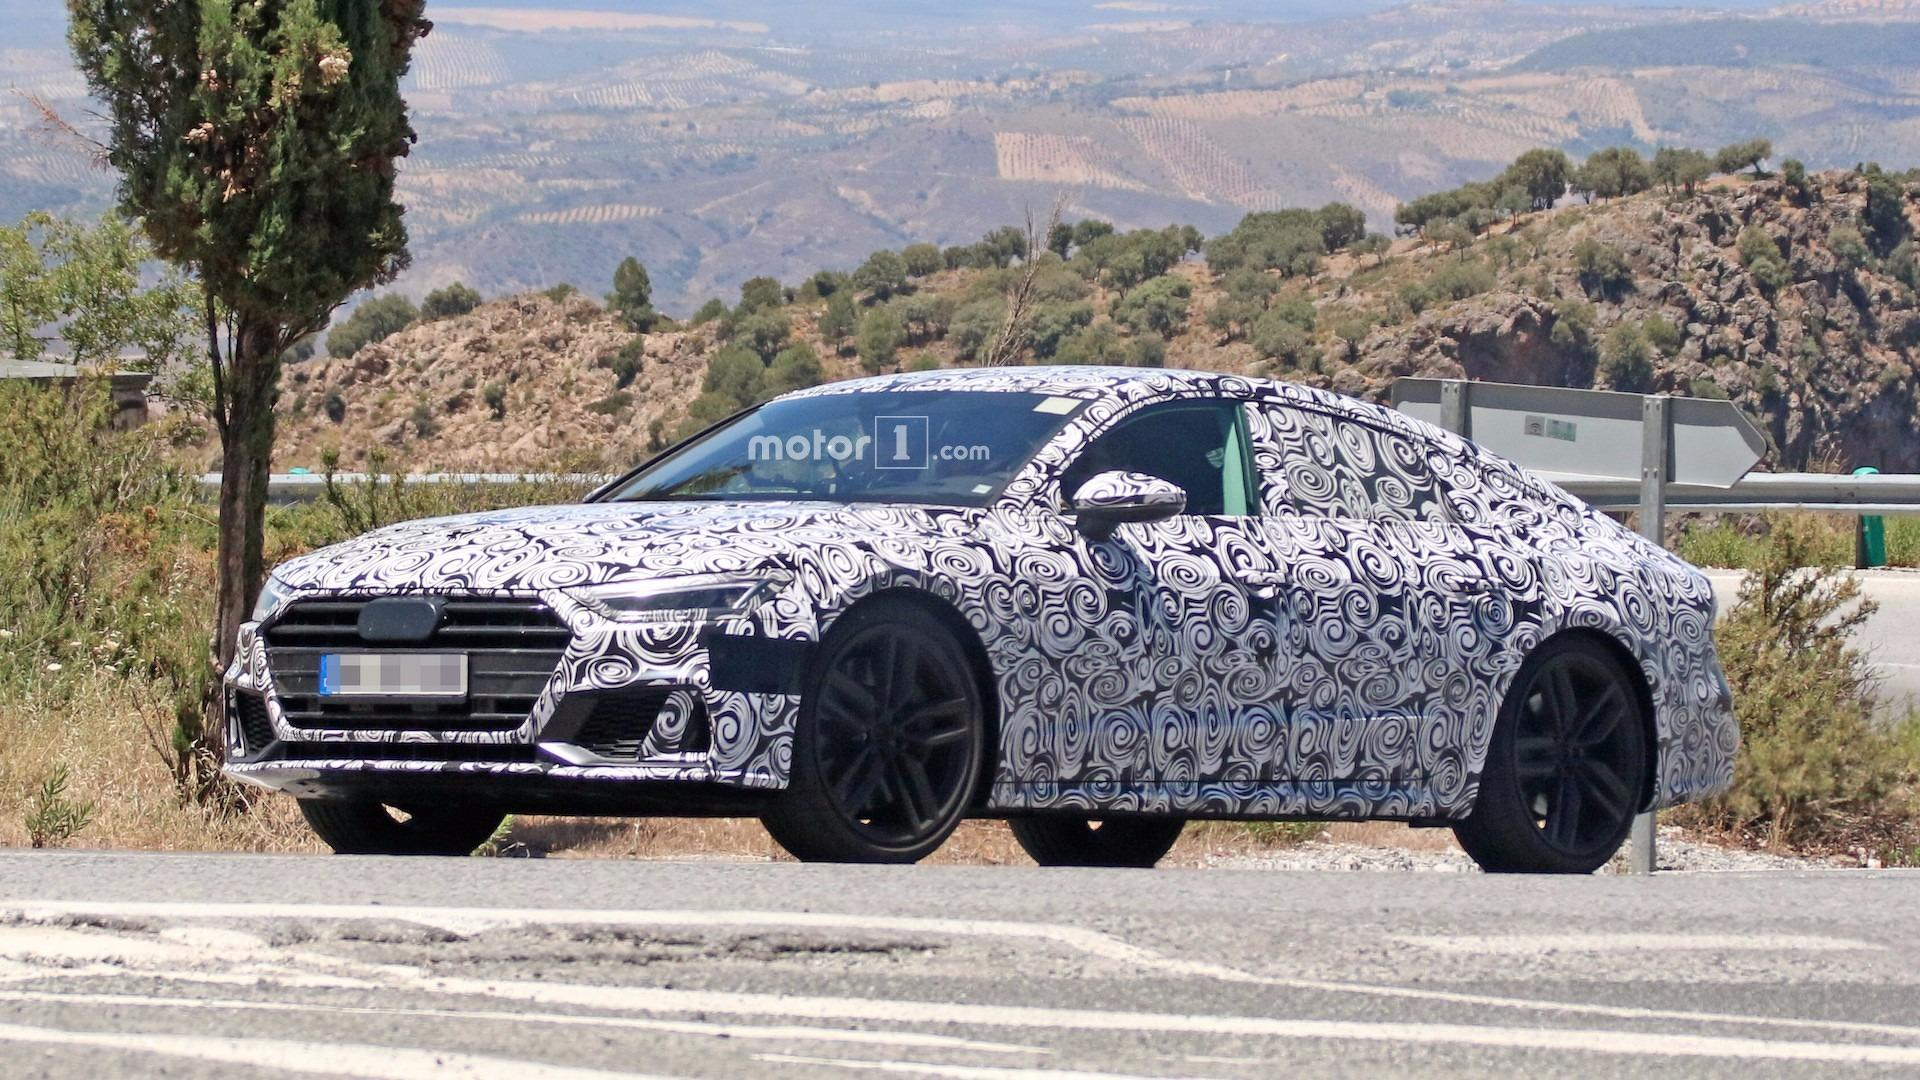 האחרון Next-Gen Audi S6 And S7 To Be Available In Diesel Versions? QF-49